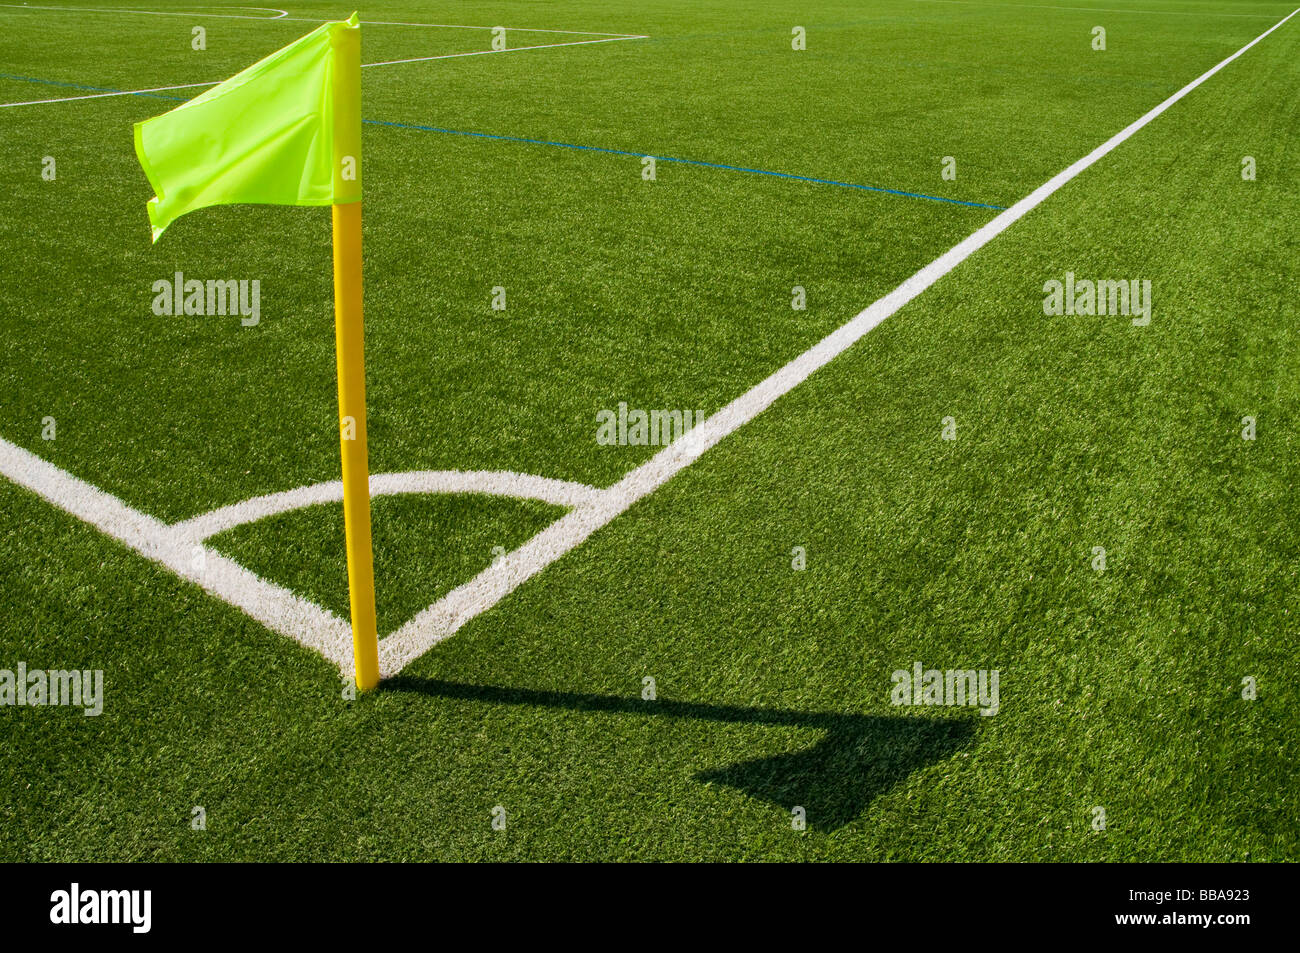 Corner flag in a football stadium - Stock Image